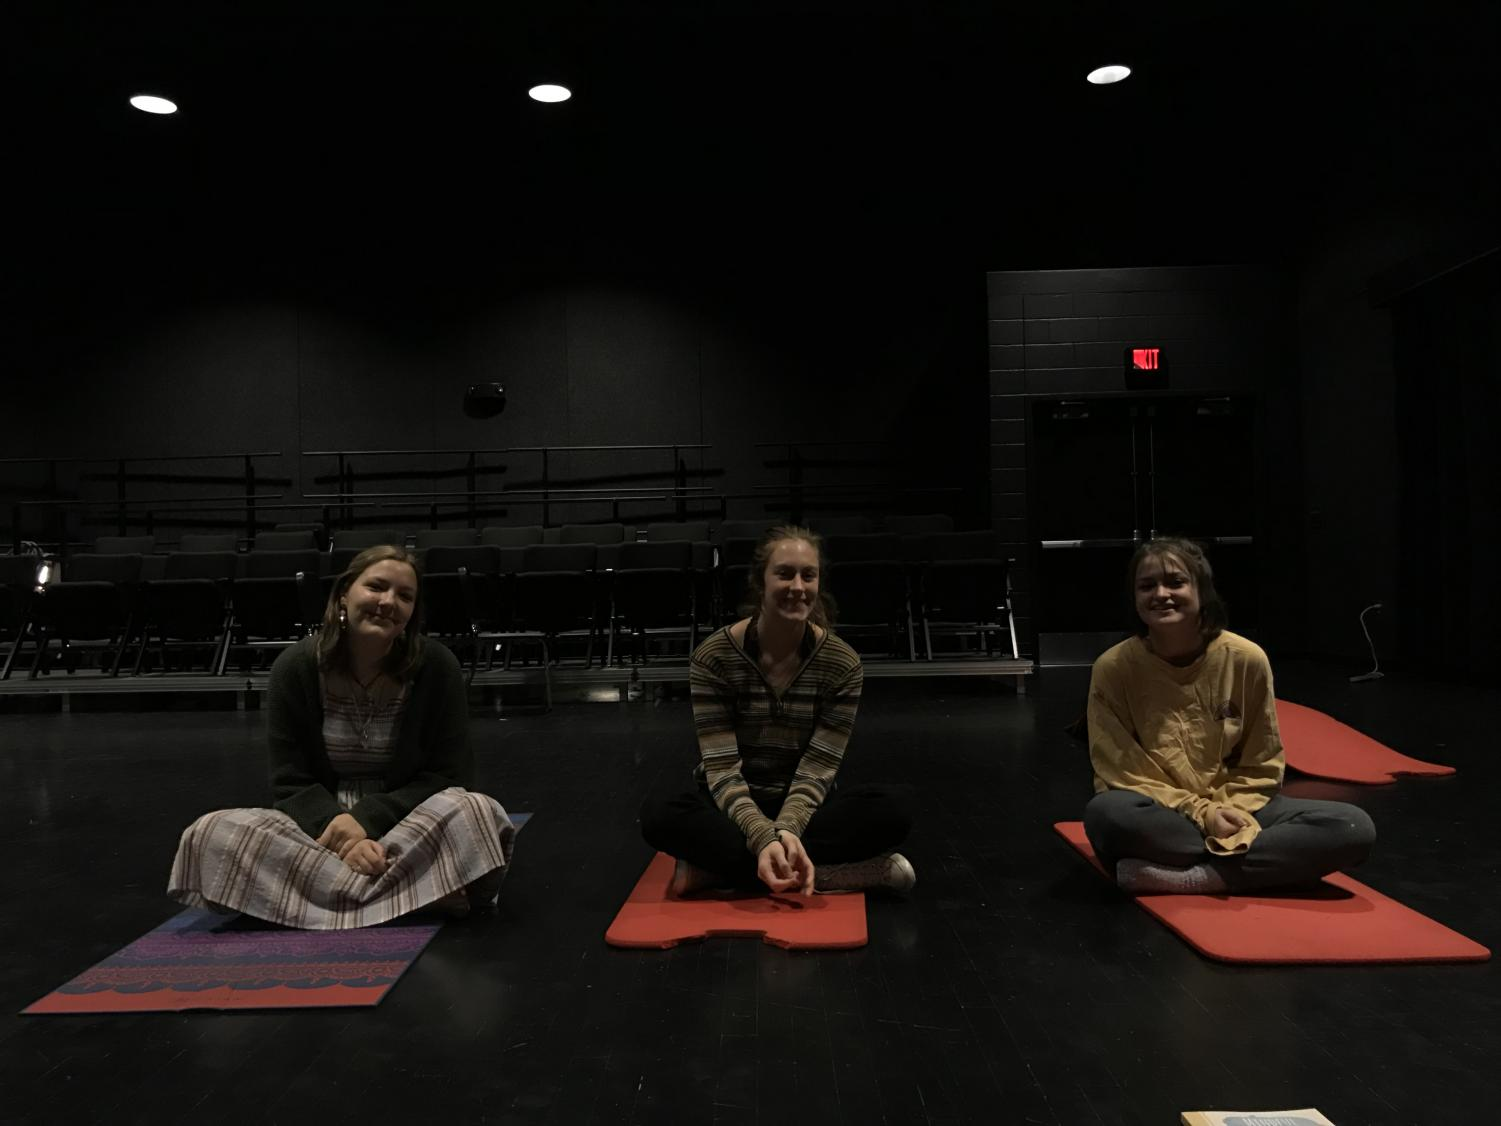 Senior Sydney Ames leads Mindful Mornings with other leaders Hayley Moss and Aspen Grieshaber.